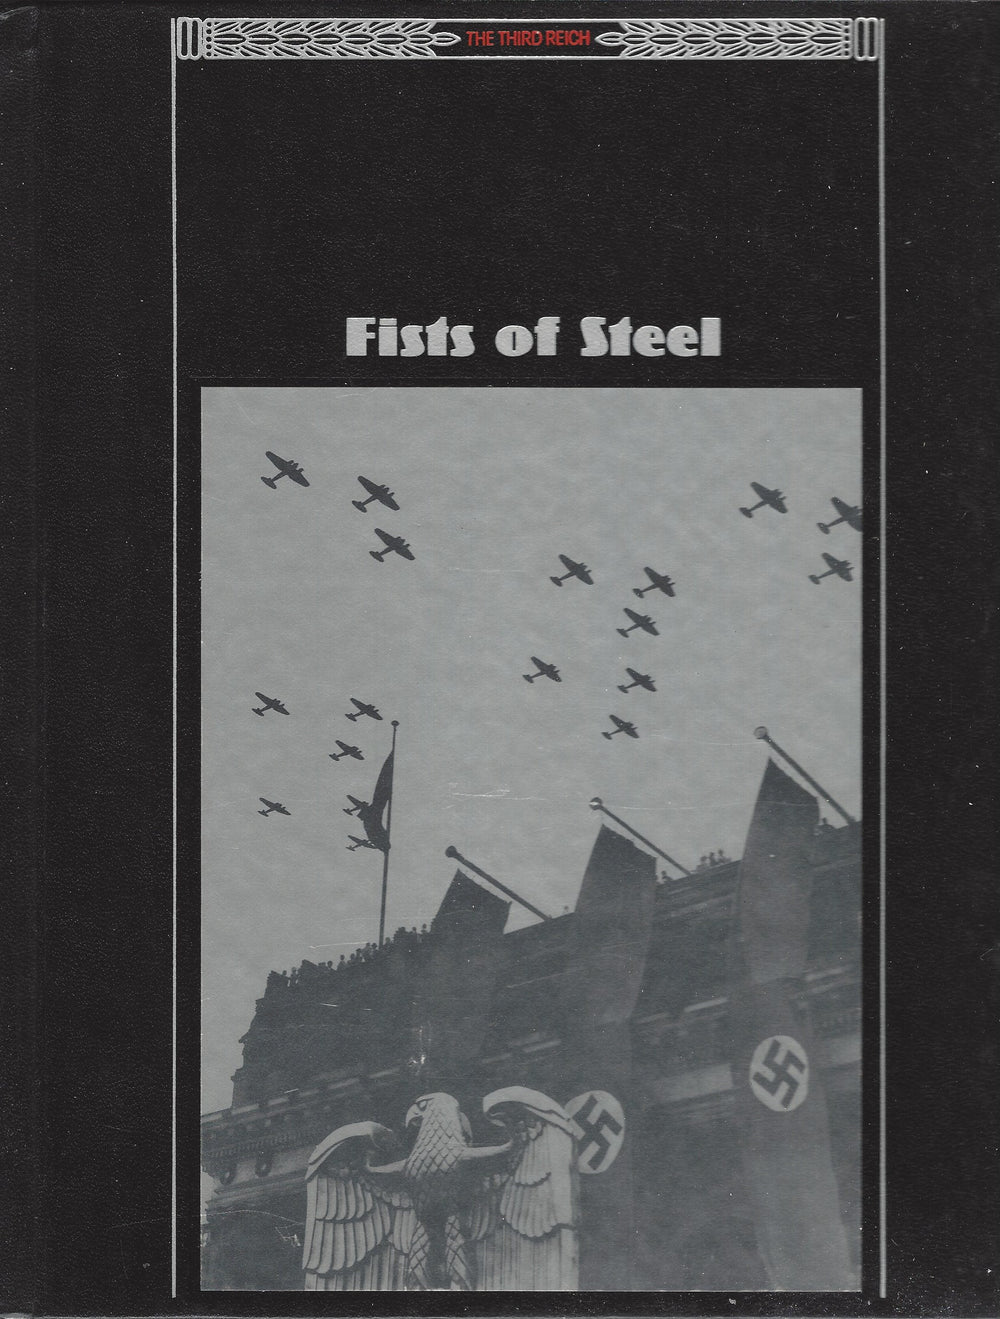 Time Life;  The Third Reich:  Fists of Steel   (1988)